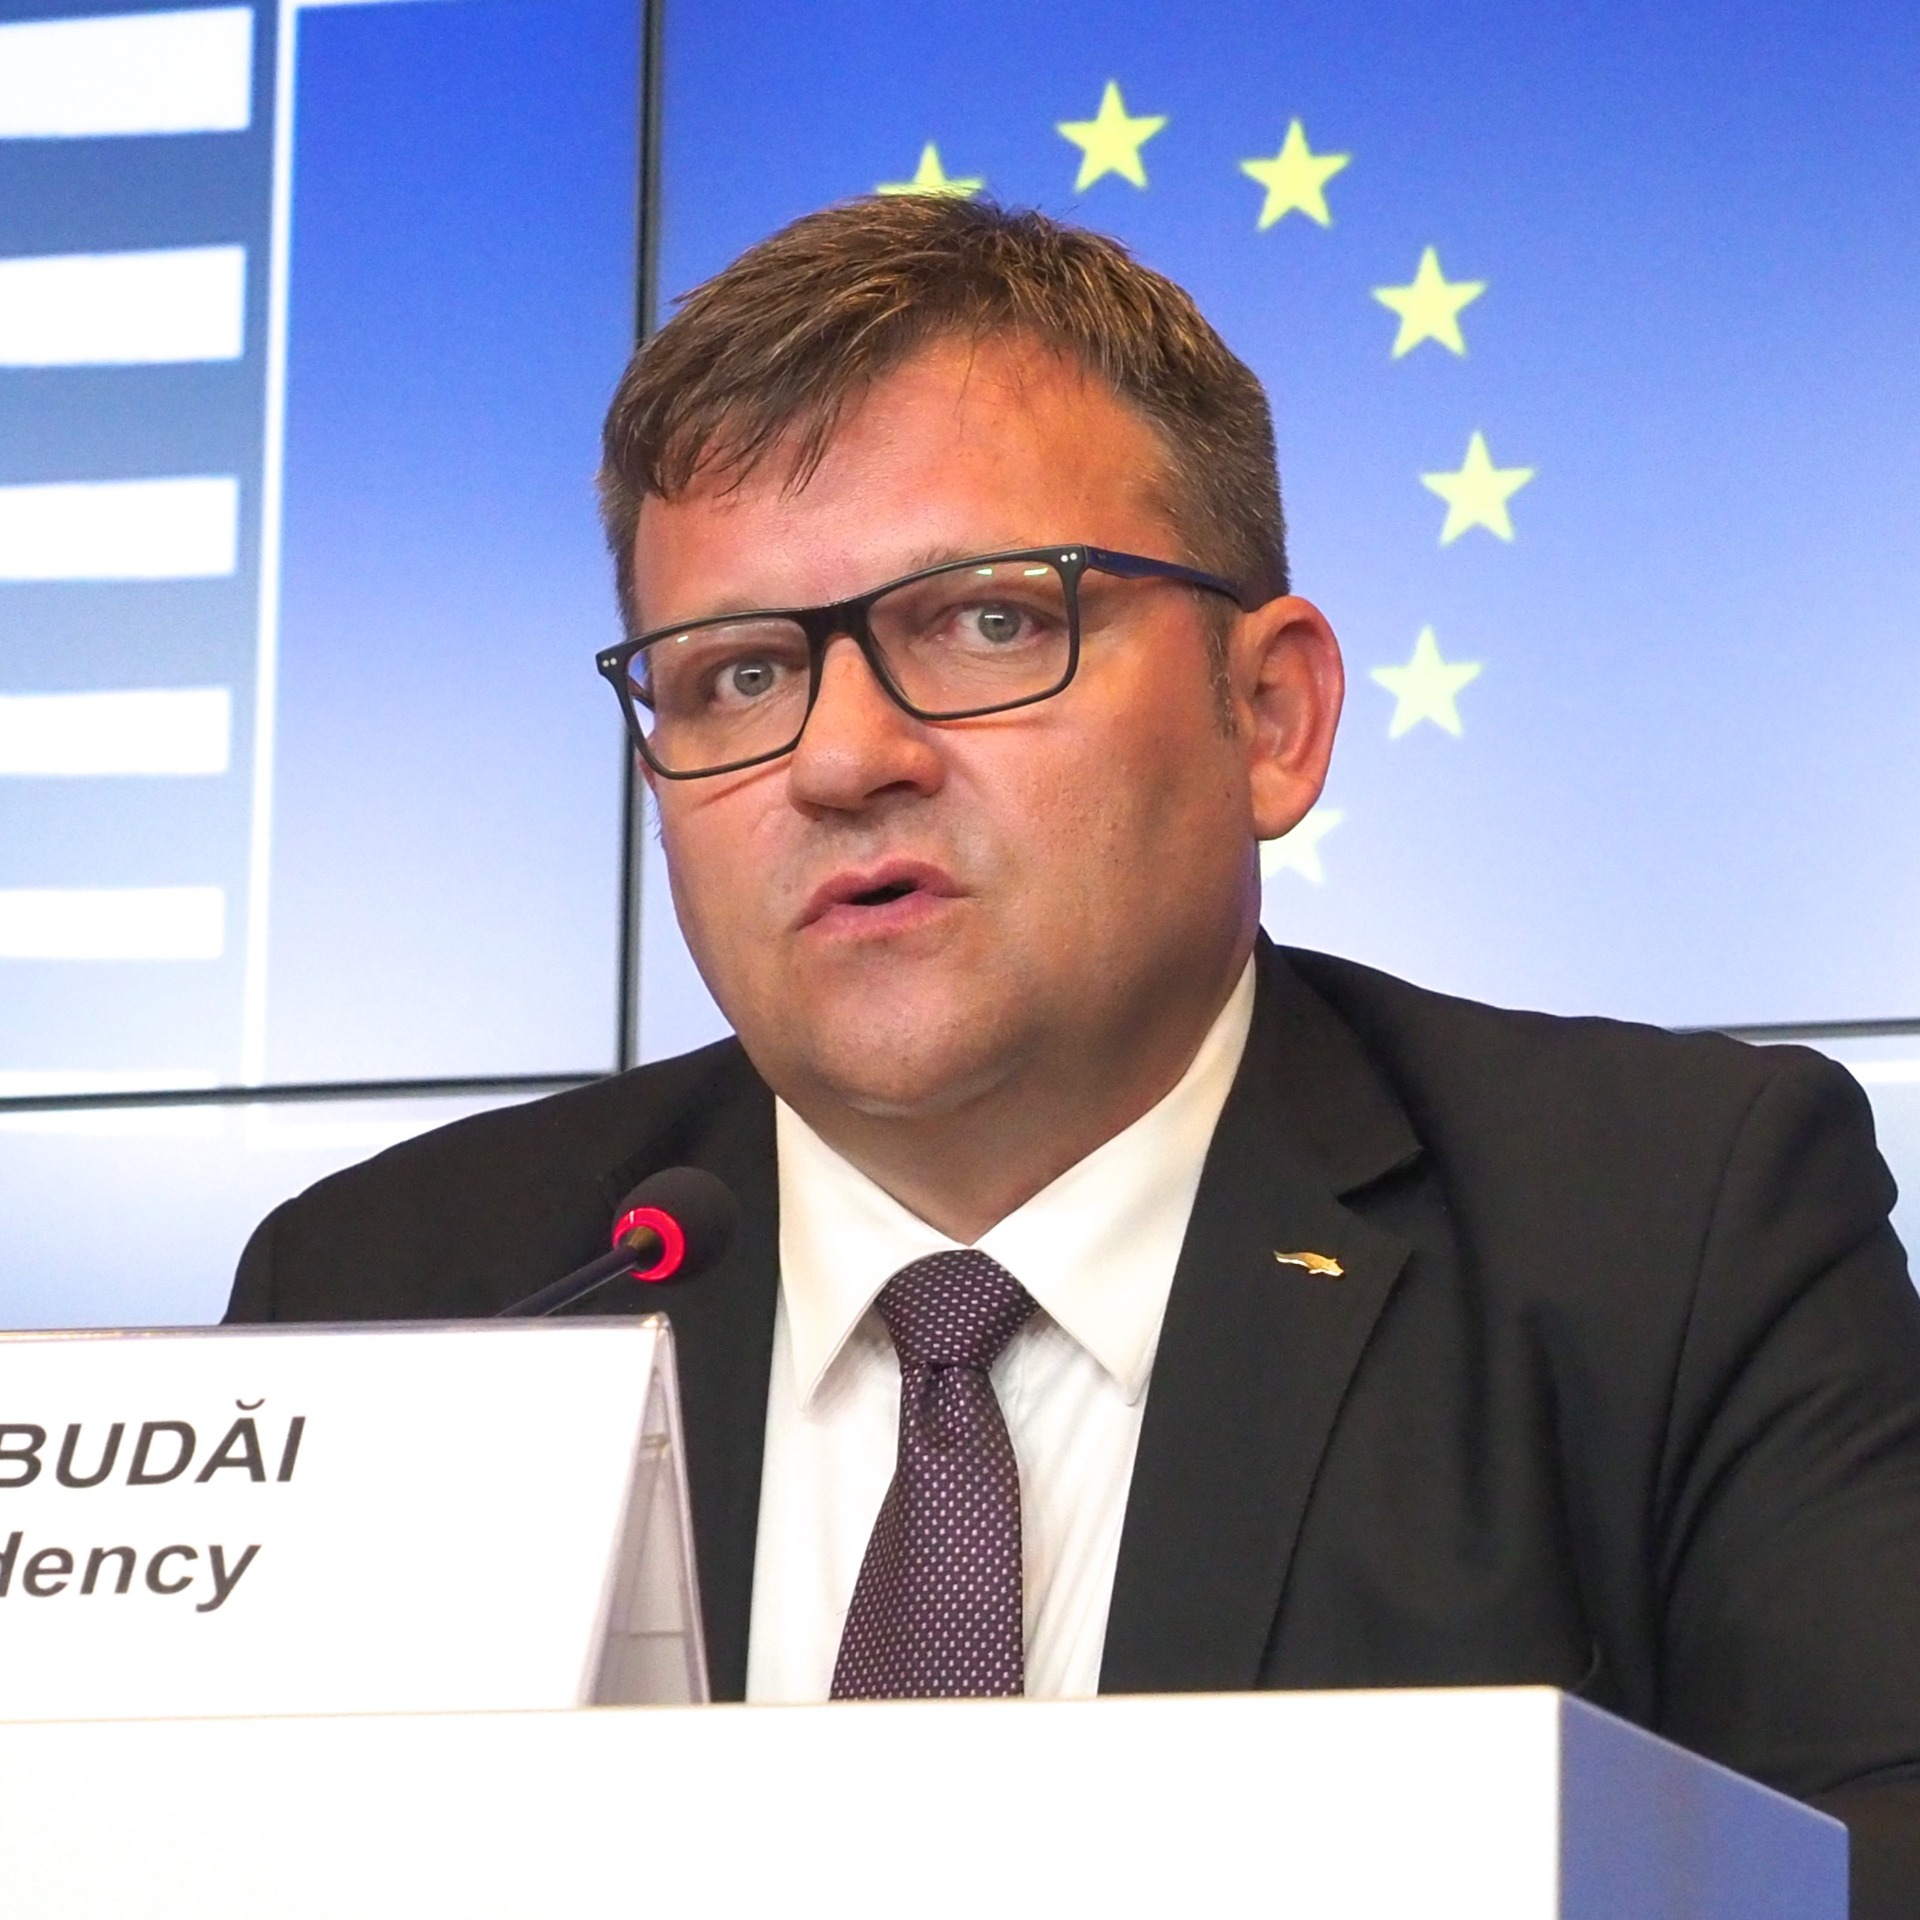 Marius-Constantin Budai, Minister of Labour and Social Justice of Romania